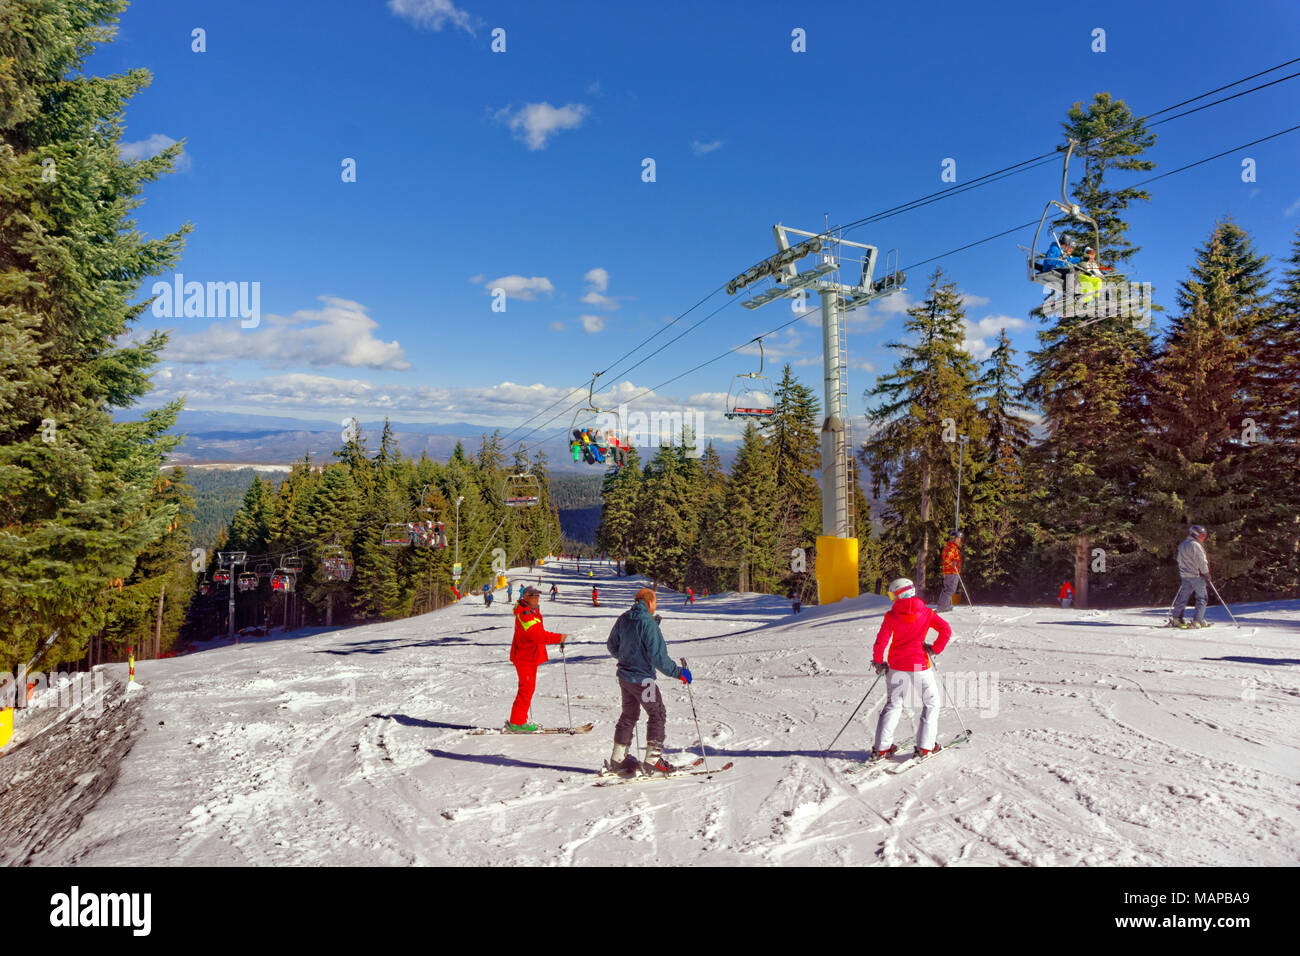 Martinovi Baraki 1 ski slope at Borovets ski resort, Targovishte, Bulgaria. - Stock Image